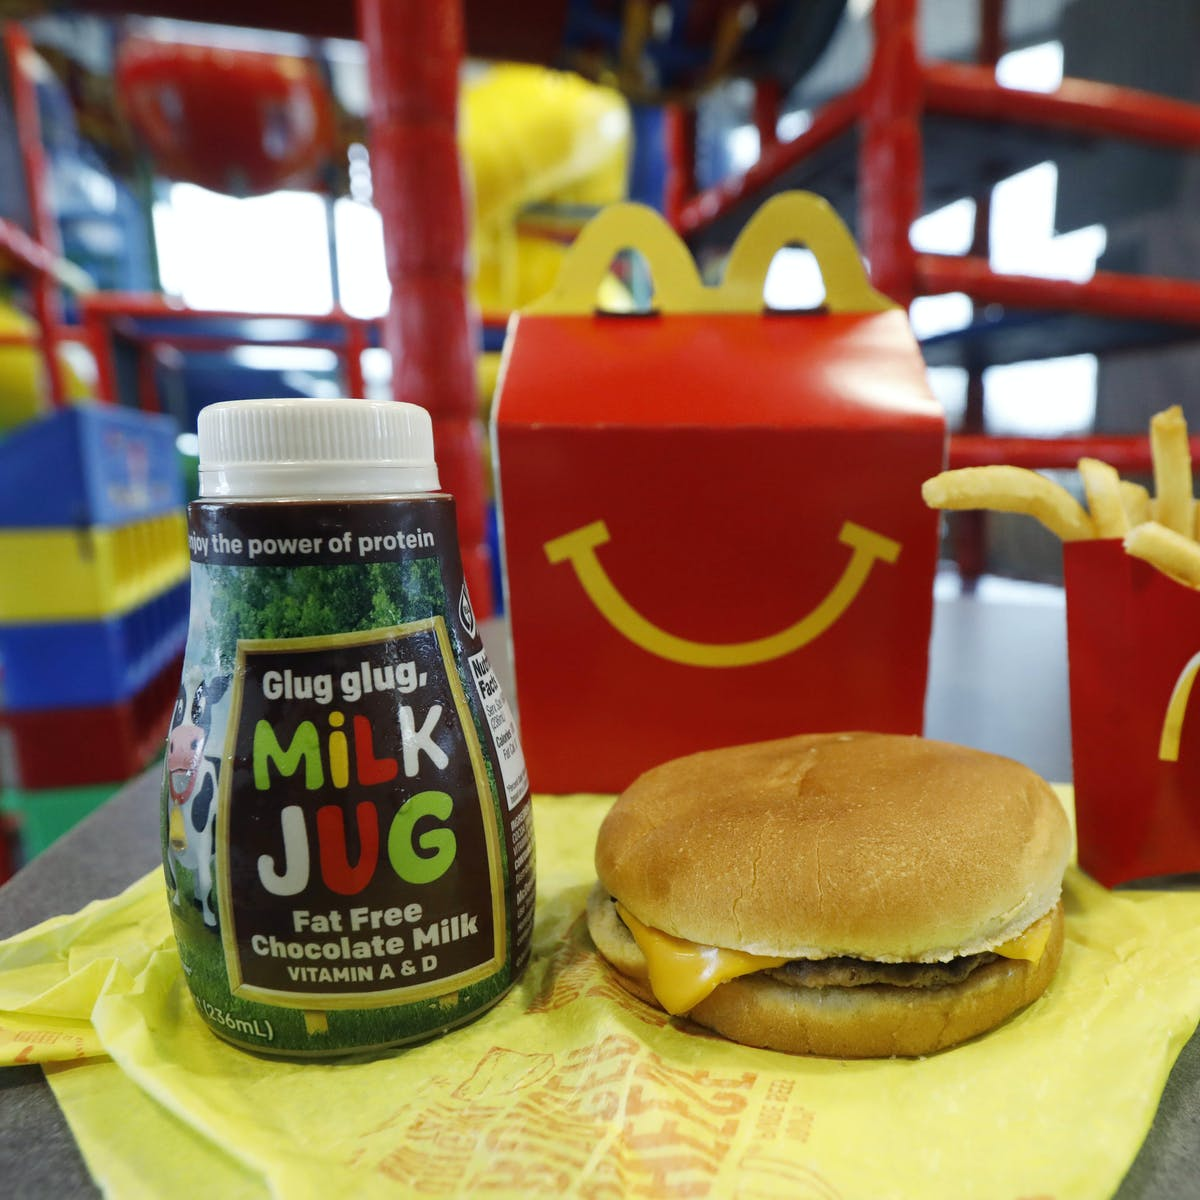 Will holding the cheese and chocolate milk on Happy Meals make a ...